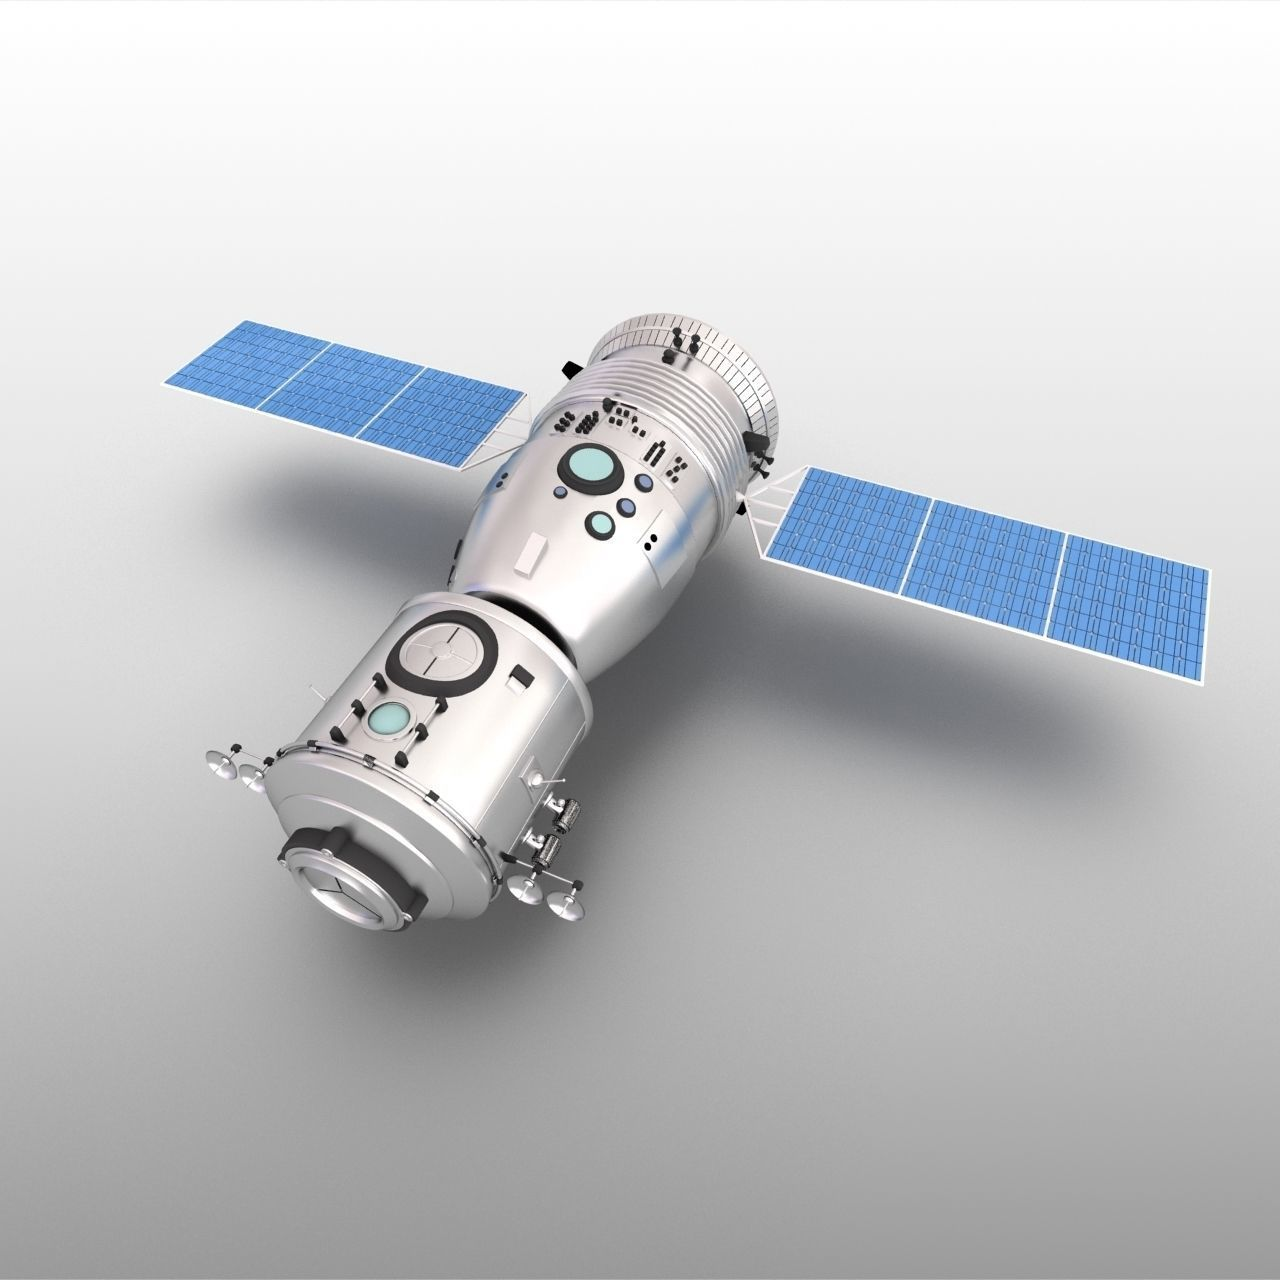 Spacecraft Shenzhou nine earth Tiangong-1 manned laboratory